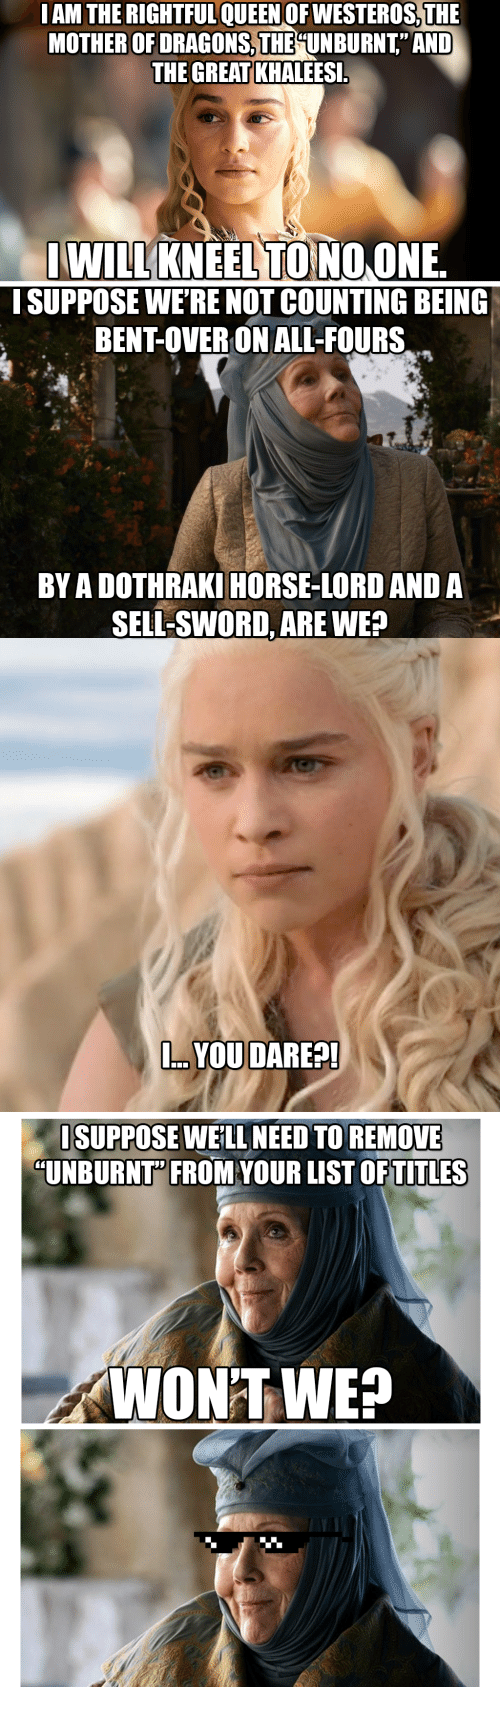 """Horse, Dothraki, and Dragons: MOTHER OF DRAGONS,THE UNBURNT"""" AND  THE GREAT KHALEES  WILLKNEEL TONO ONE  I SUPPOSE WE'RE NOT COUNTING BEING  BENT-OVER ON ALL-FOURS  BY A DOTHRAKI HORSE-LORD AND A  SELL-SWORD, ARE WE?  . YOU DARE?!  ISUPPOSE WE'LL NEED TO REMOVE  """"UNBURNT"""" FROM YOUR LIST OFTITLES  WON'T WE?"""